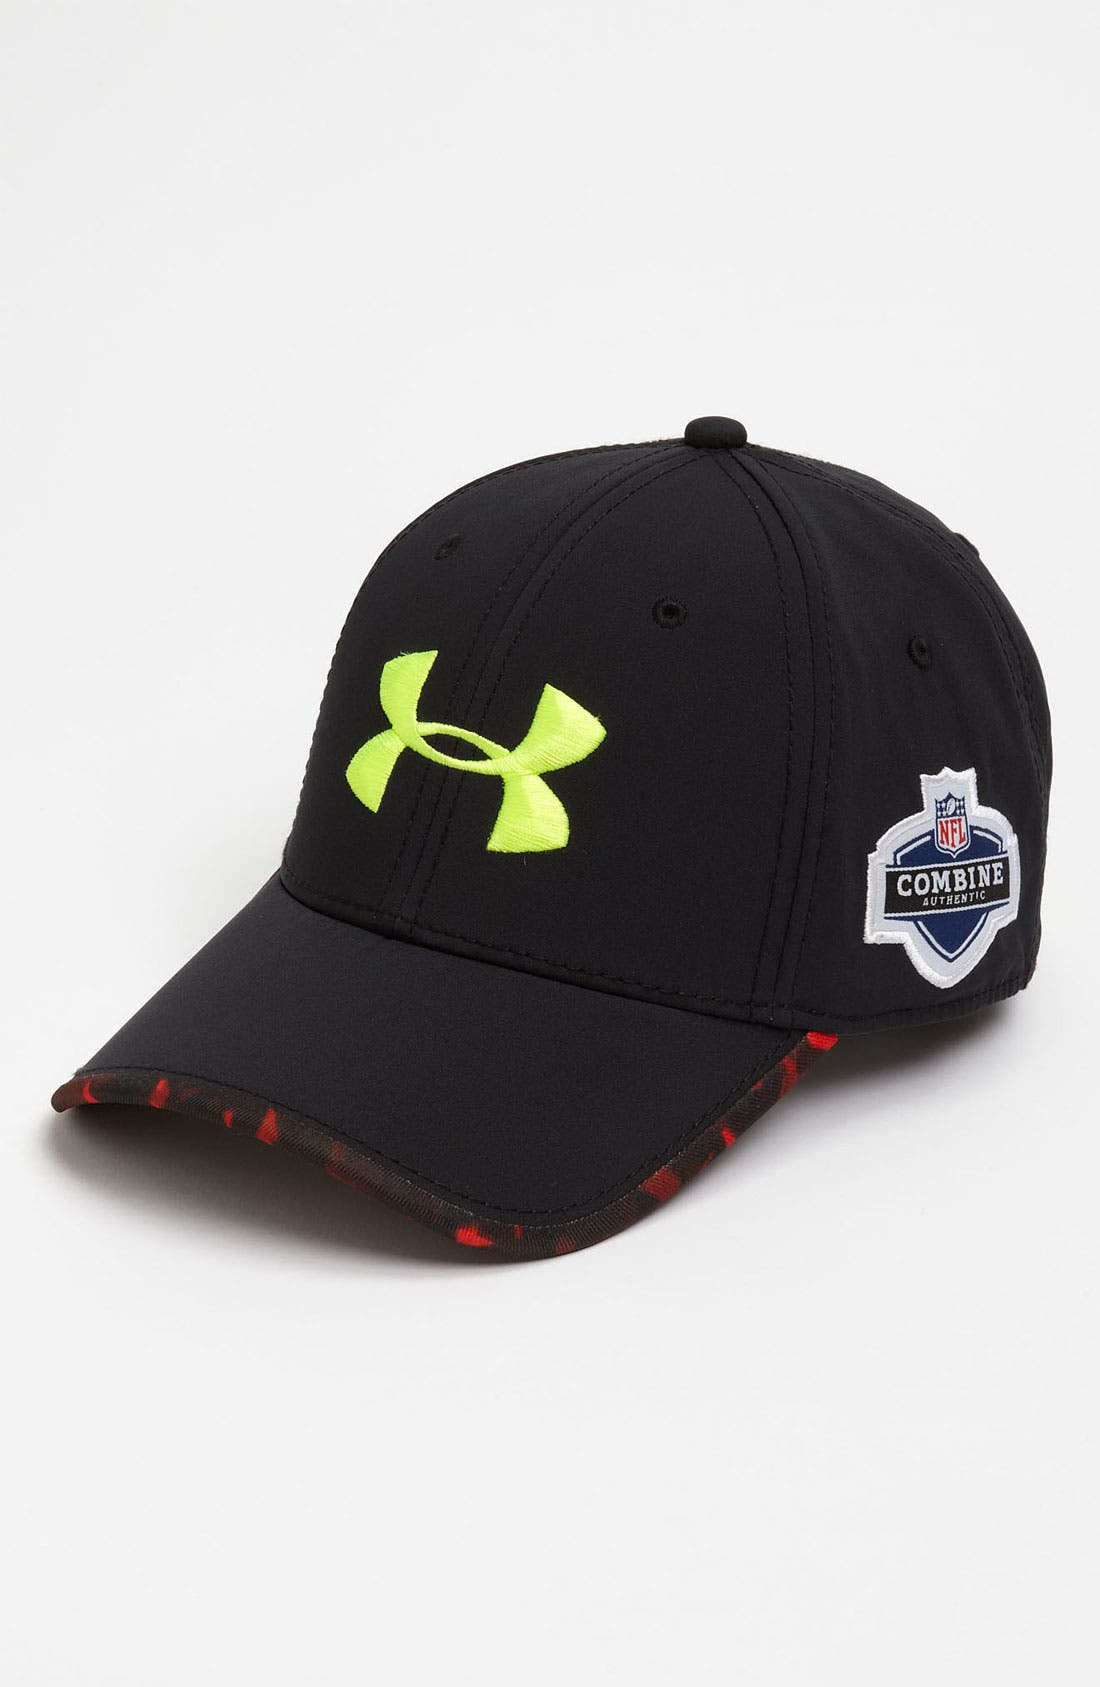 Alternate Image 1 Selected - Under Armour 'NFL Combine Authentic' Stretch Cap